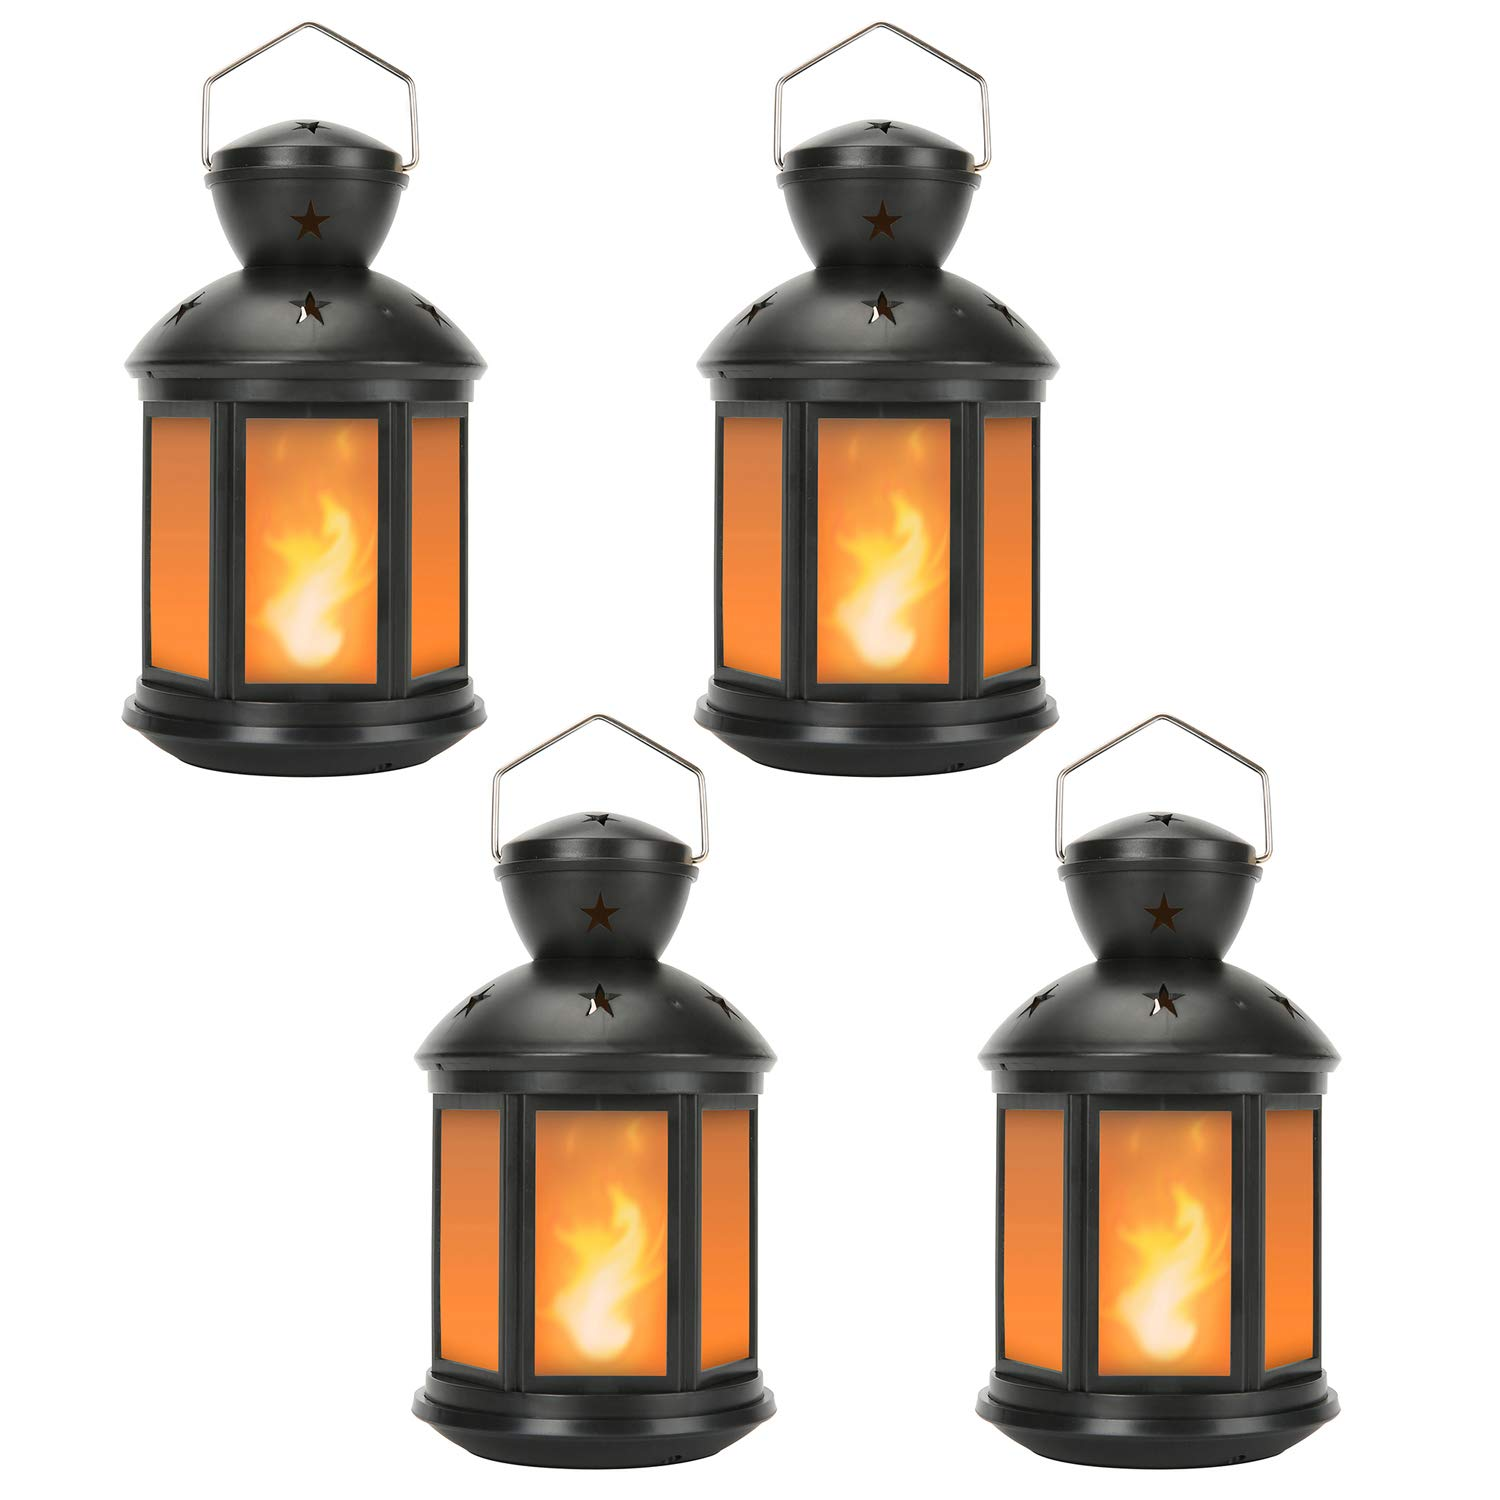 Decorative Lanterns Battery Powered LED, with 6 Hours Timer,Indoor/Outdoor,Lanterns Decorative for Wedding,Parties,Black-4pcs